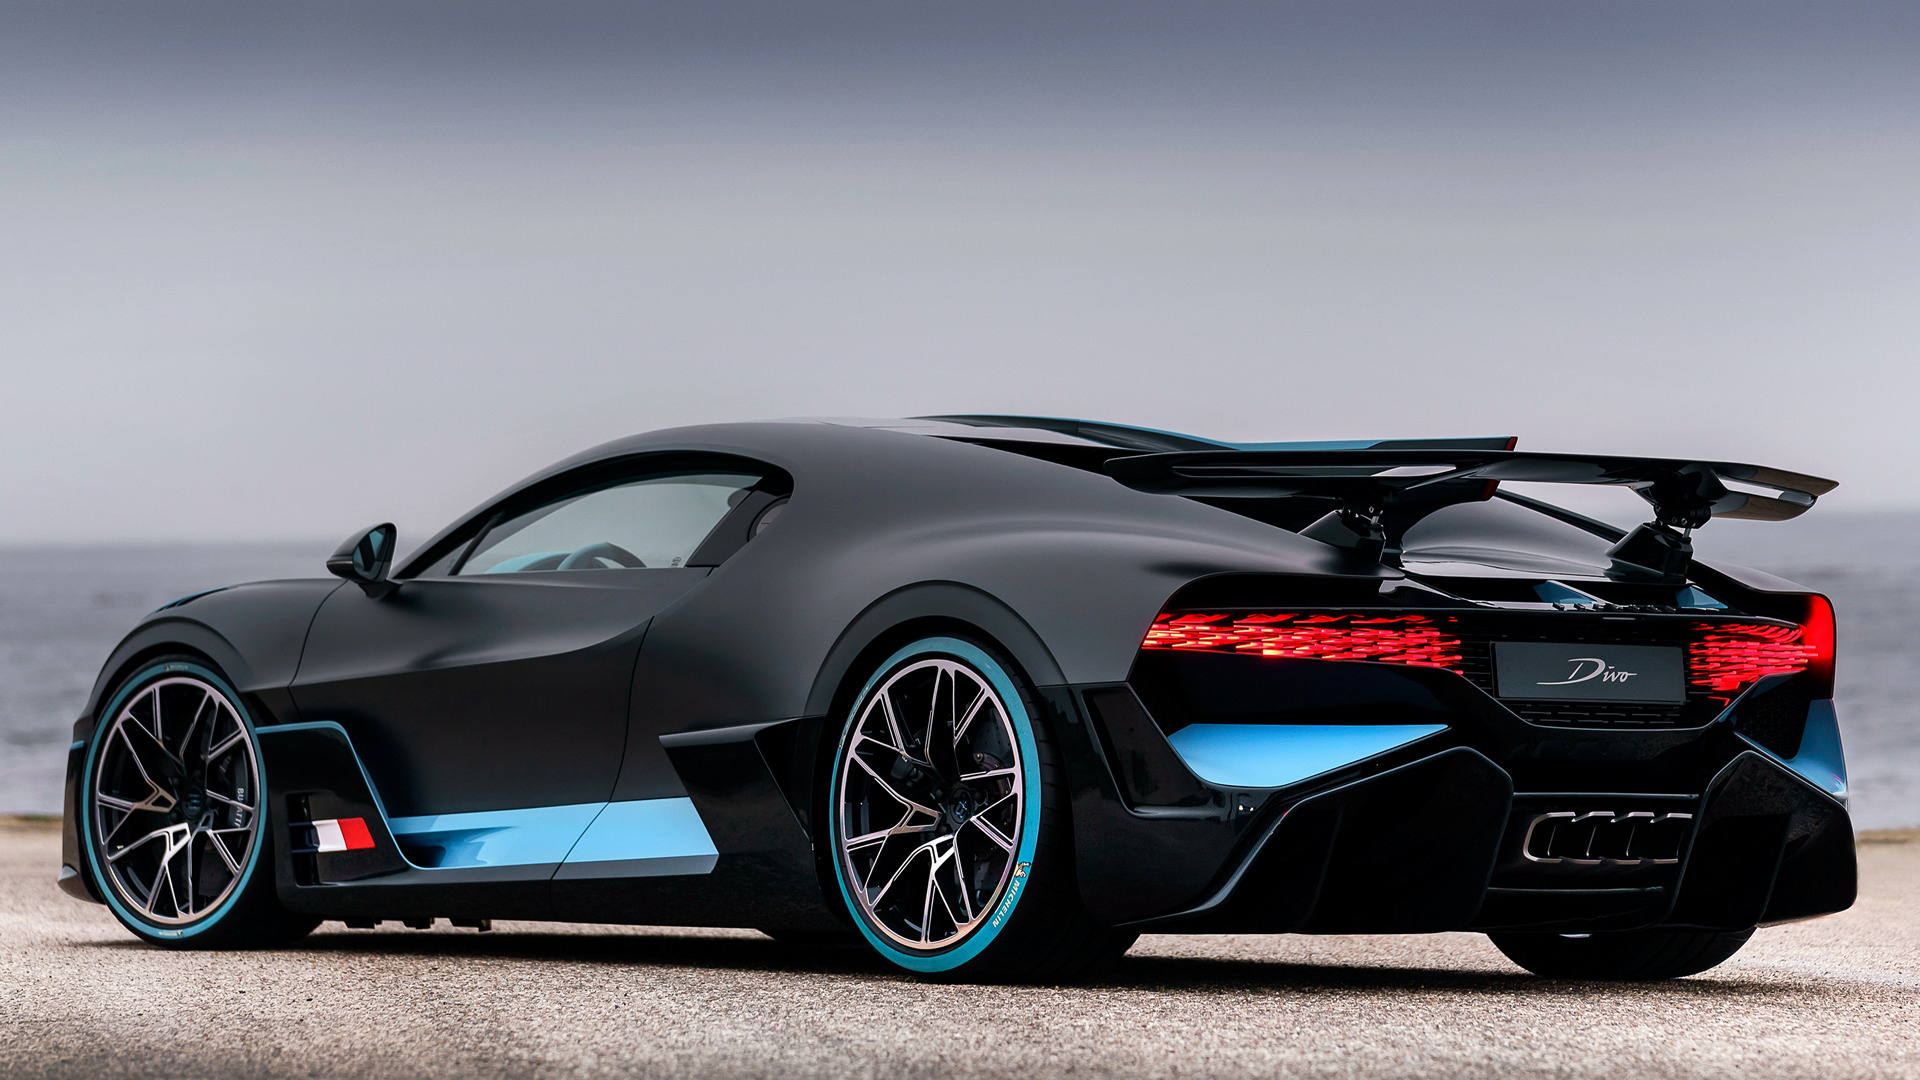 Bentley Car Wallpaper >> Bugatti Divo (2018) Wallpapers and HD Images - Car Pixel